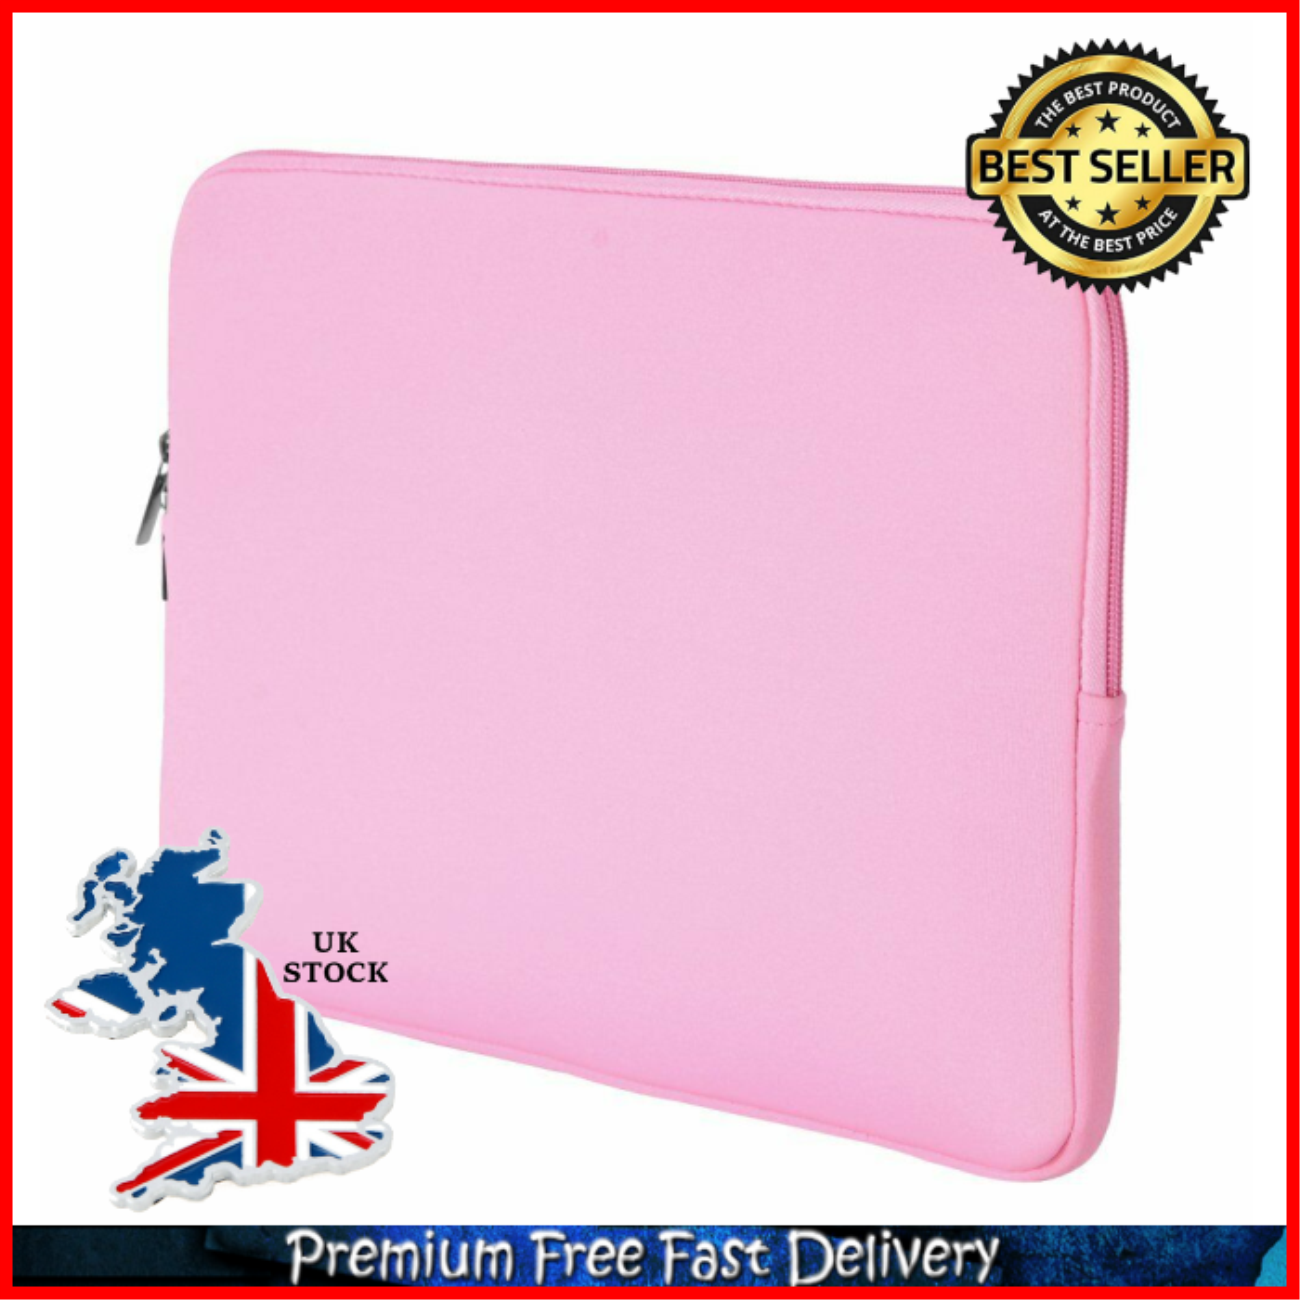 Pink RAINYEAR 15.6 Inch Laptop Sleeve Protective Case Zipper Cover Computer Carrying Bag Compatible 15.6 Notebook Computer Ultrabook Chromebook for Dell HP ThinkPad Lenovo Asus Acer Toshiba Samsung